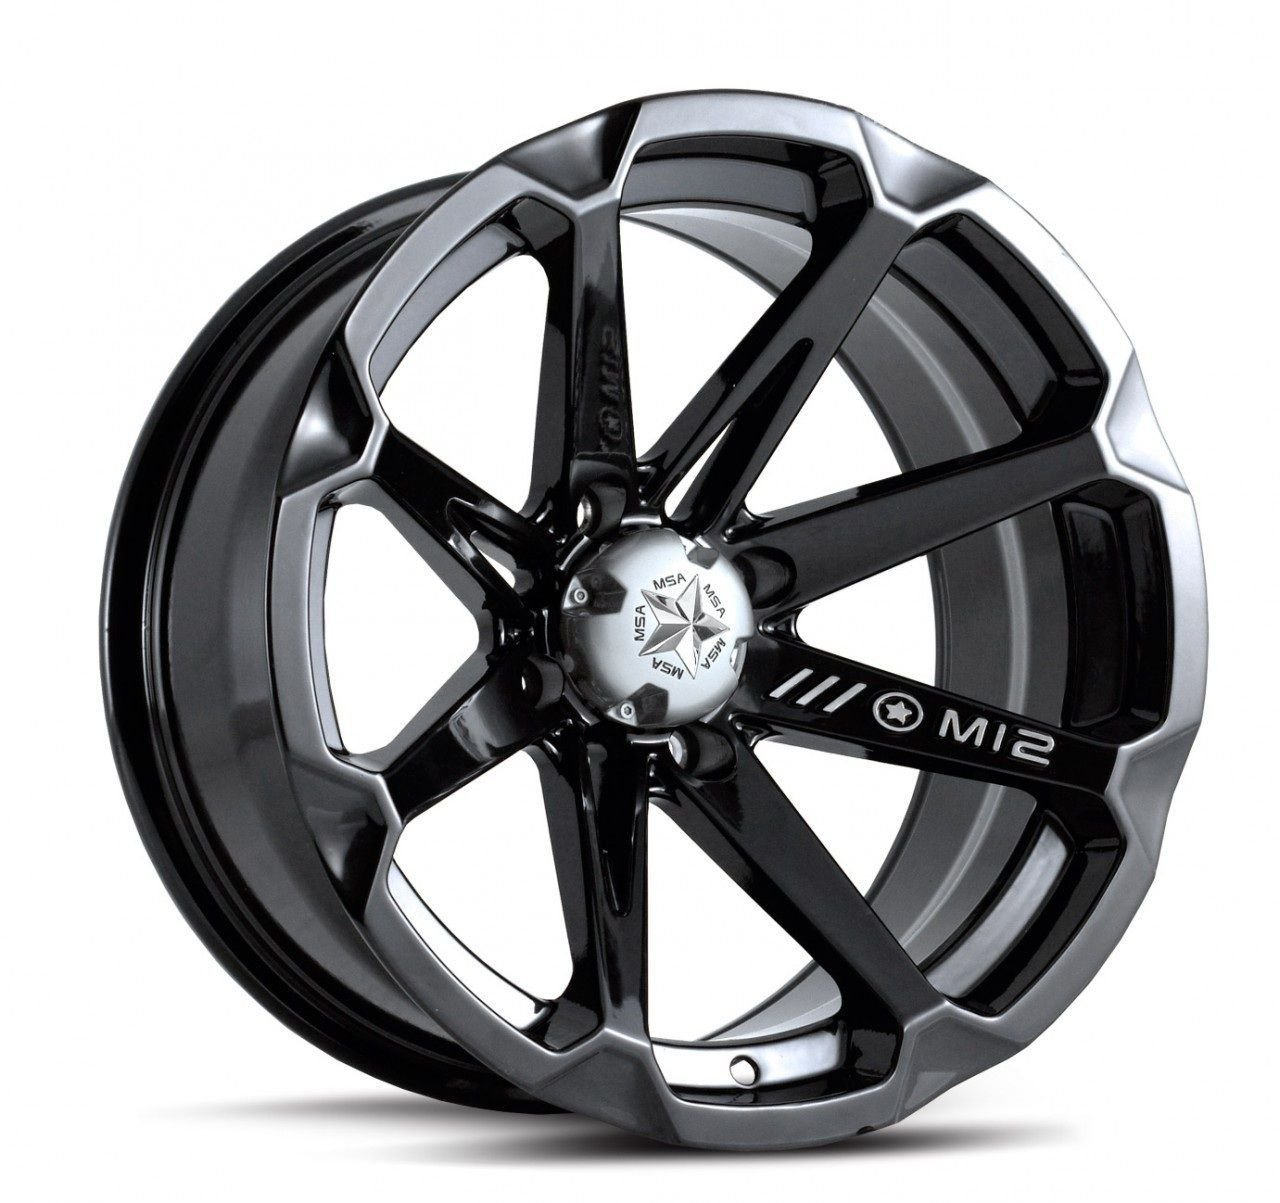 MSA M12 Diesel ATV Wheels/Rims Black 14'' Polaris 2013 Ranger 900 XP (4)